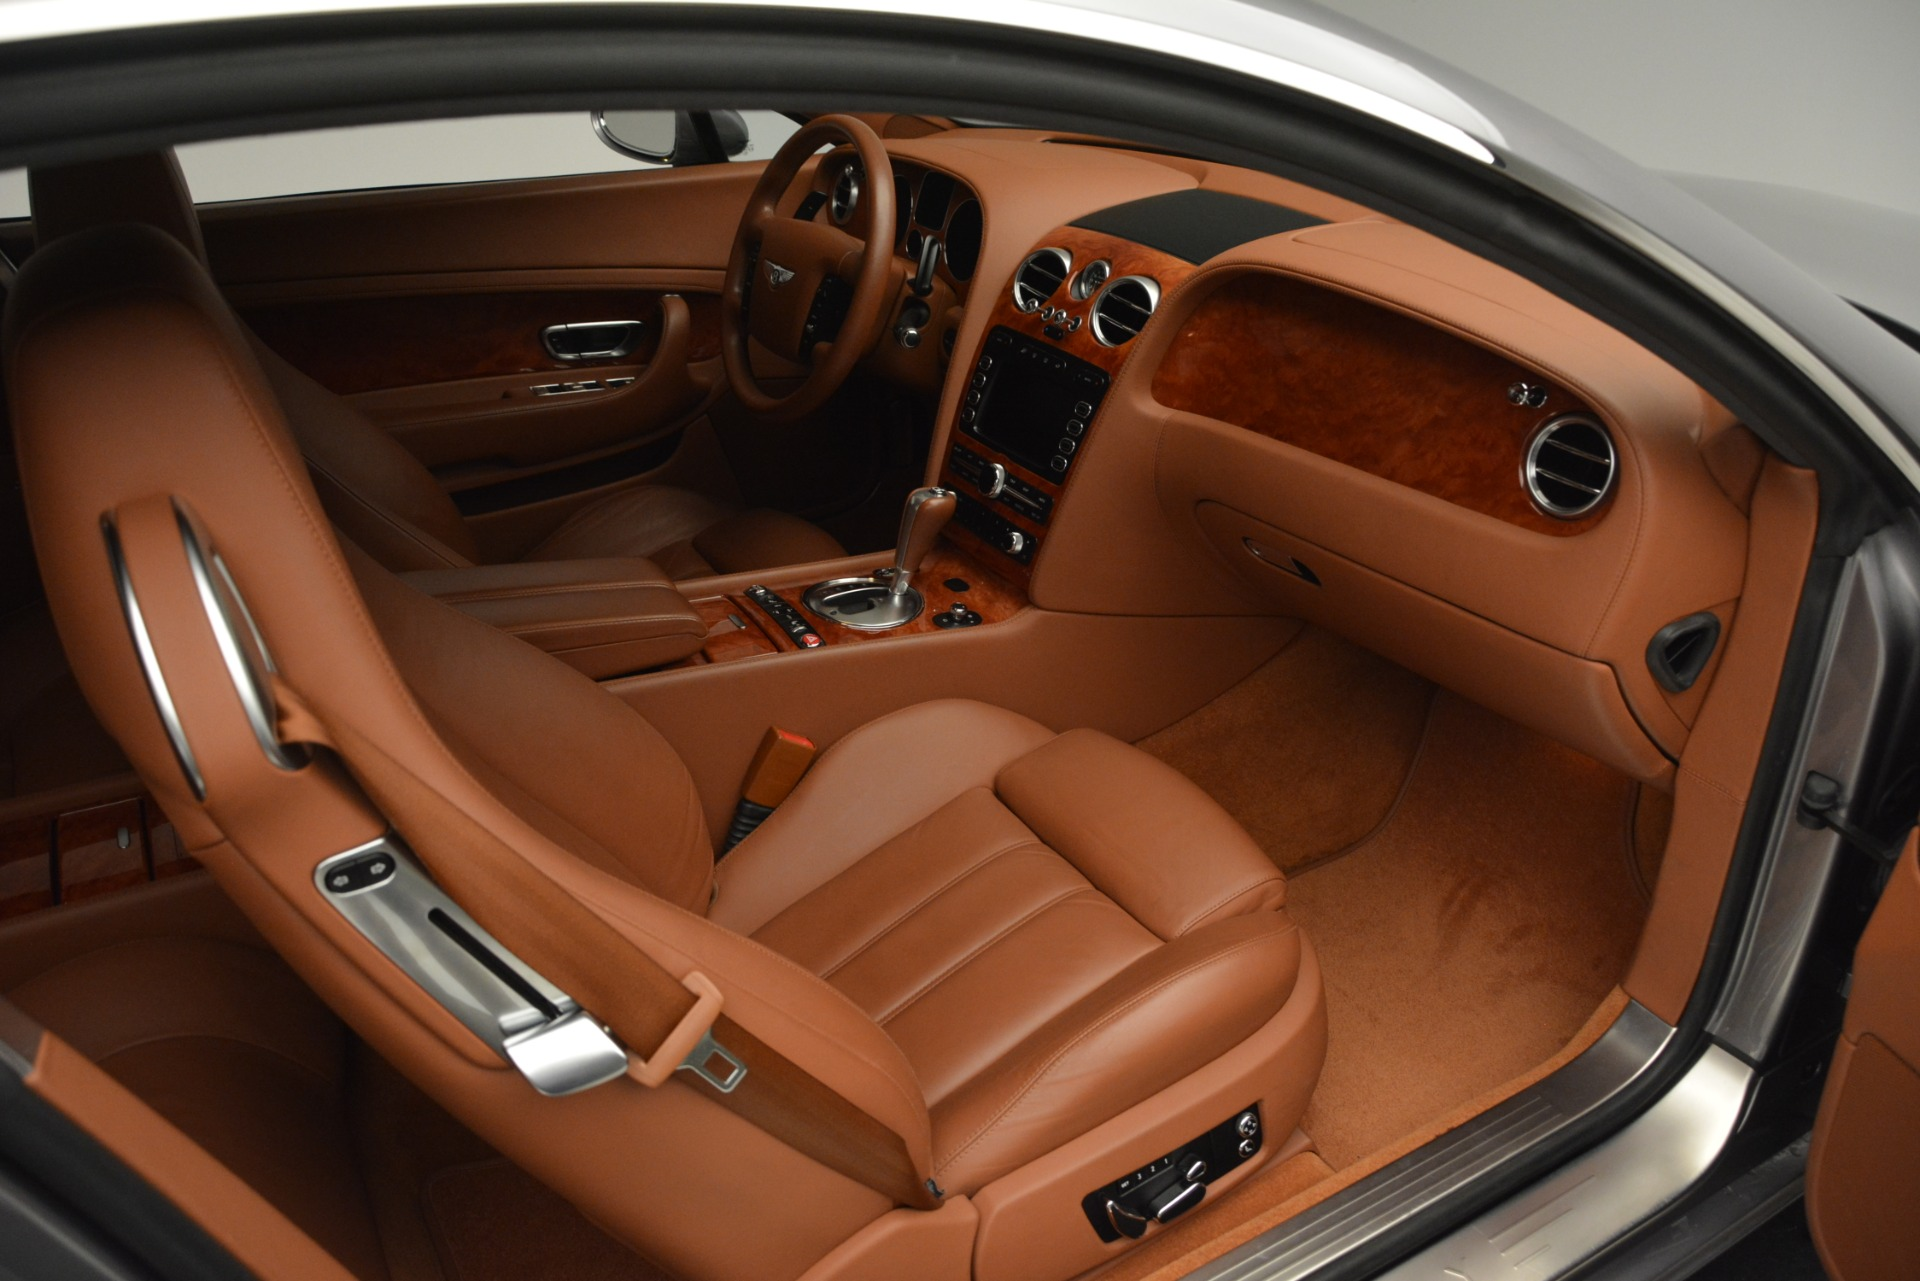 Used 2005 Bentley Continental GT GT Turbo For Sale In Westport, CT 2726_p25